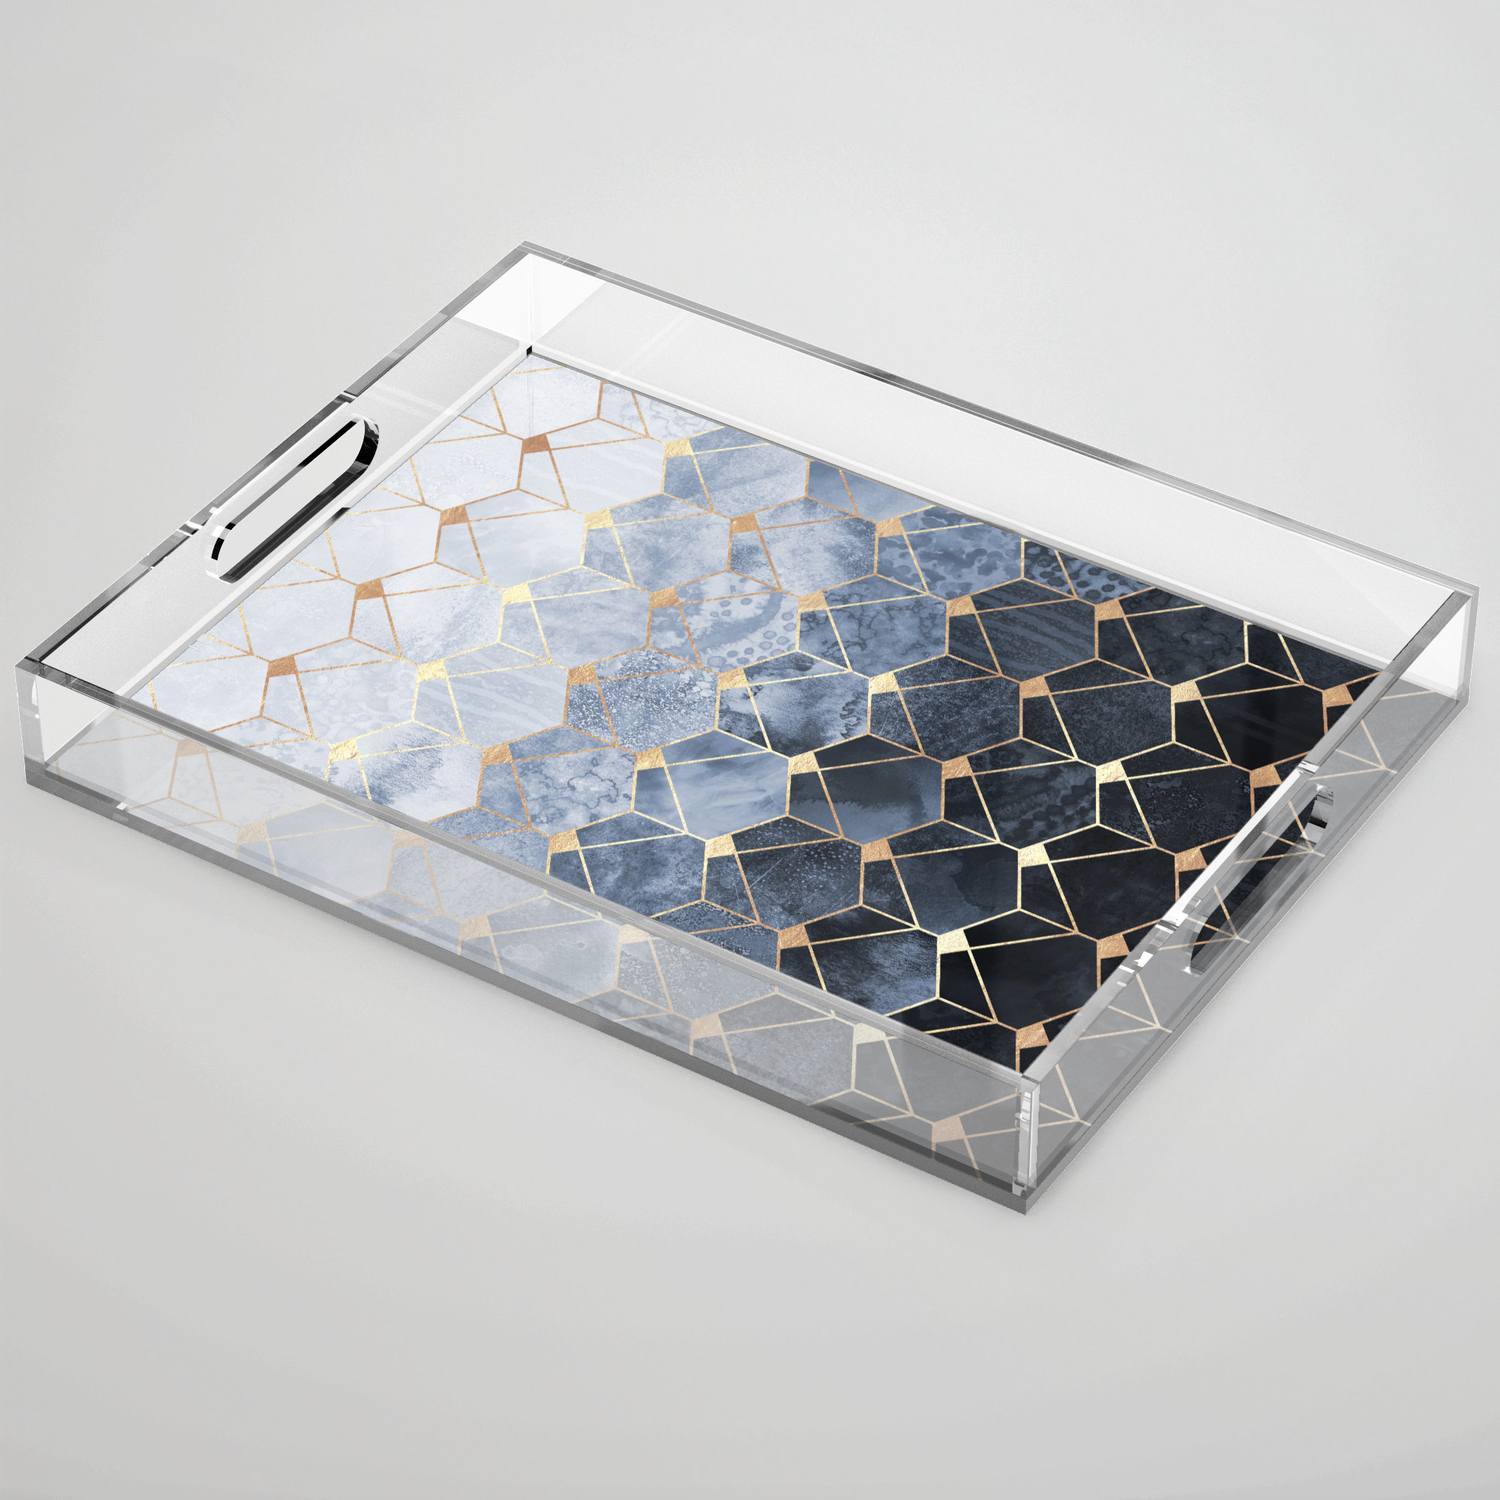 Blue Hexagons And Diamonds Acrylic Trayelisabethfredriksson Regarding Blue Hexagons And Diamonds Credenzas (View 1 of 20)